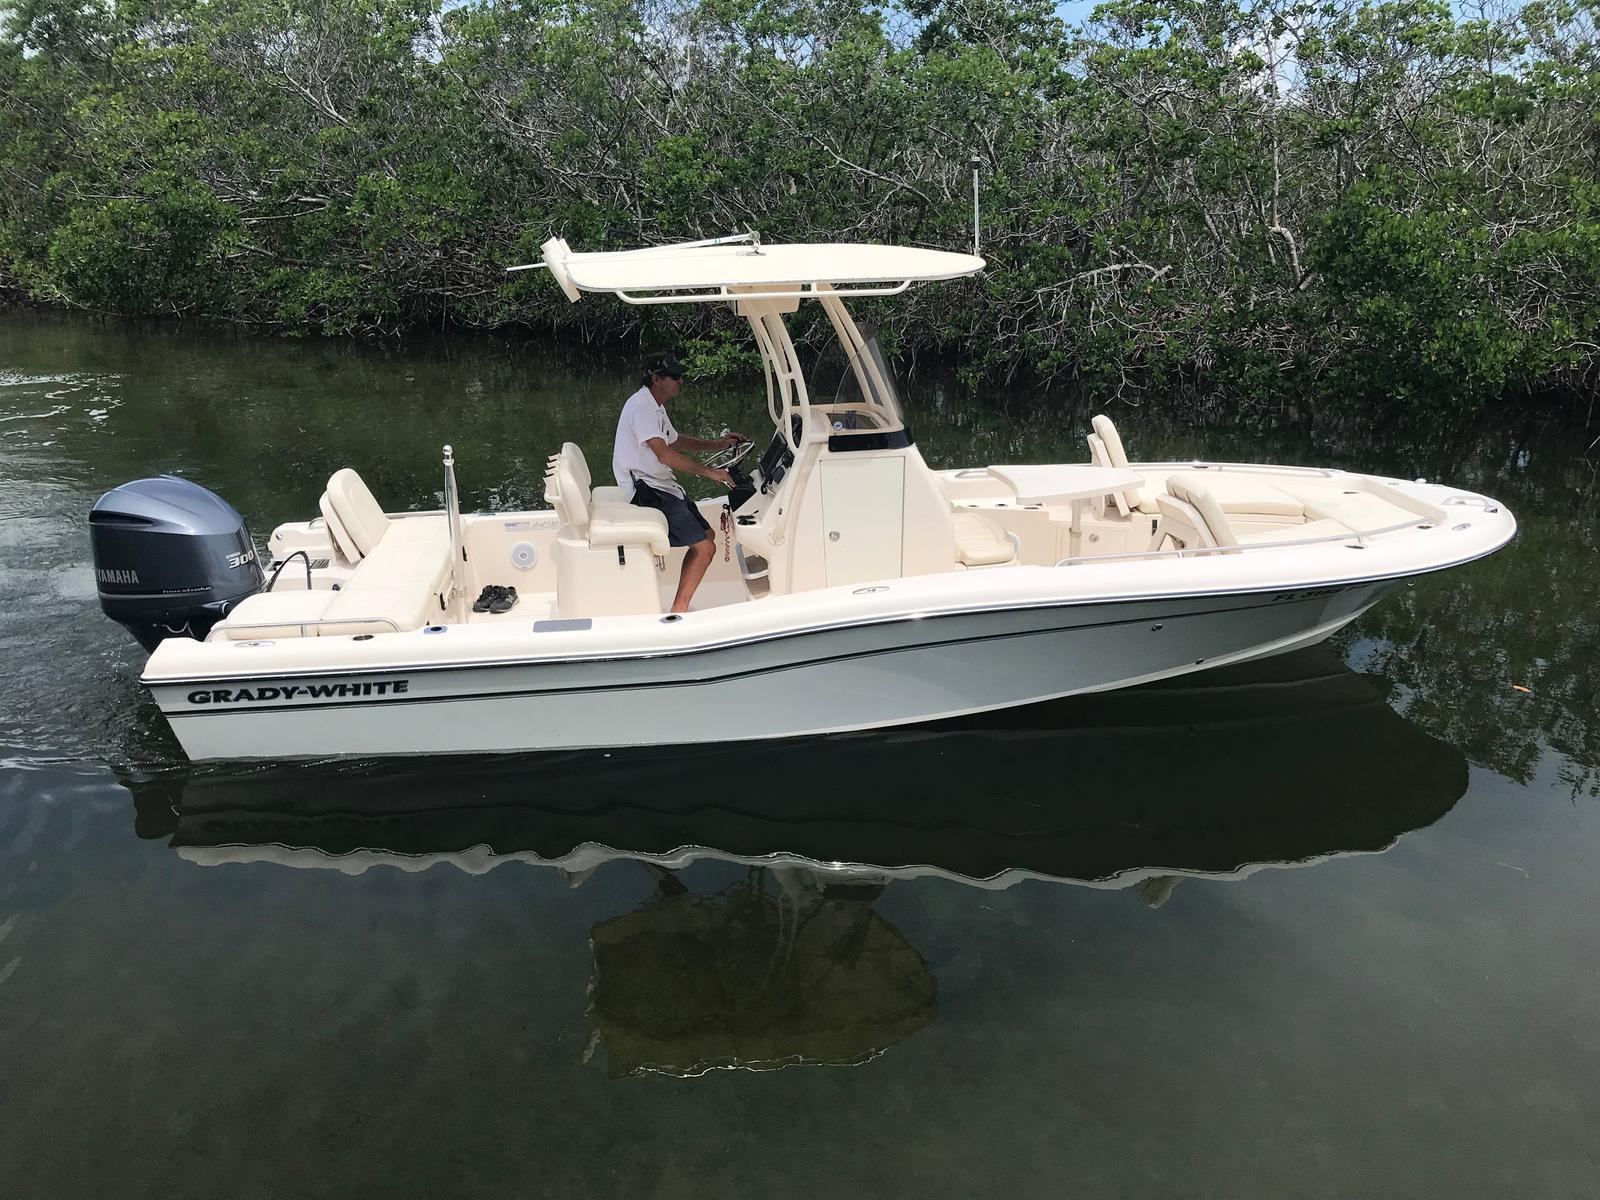 Inventory from Grady-White and Pathfinder Caribee Boat Sales